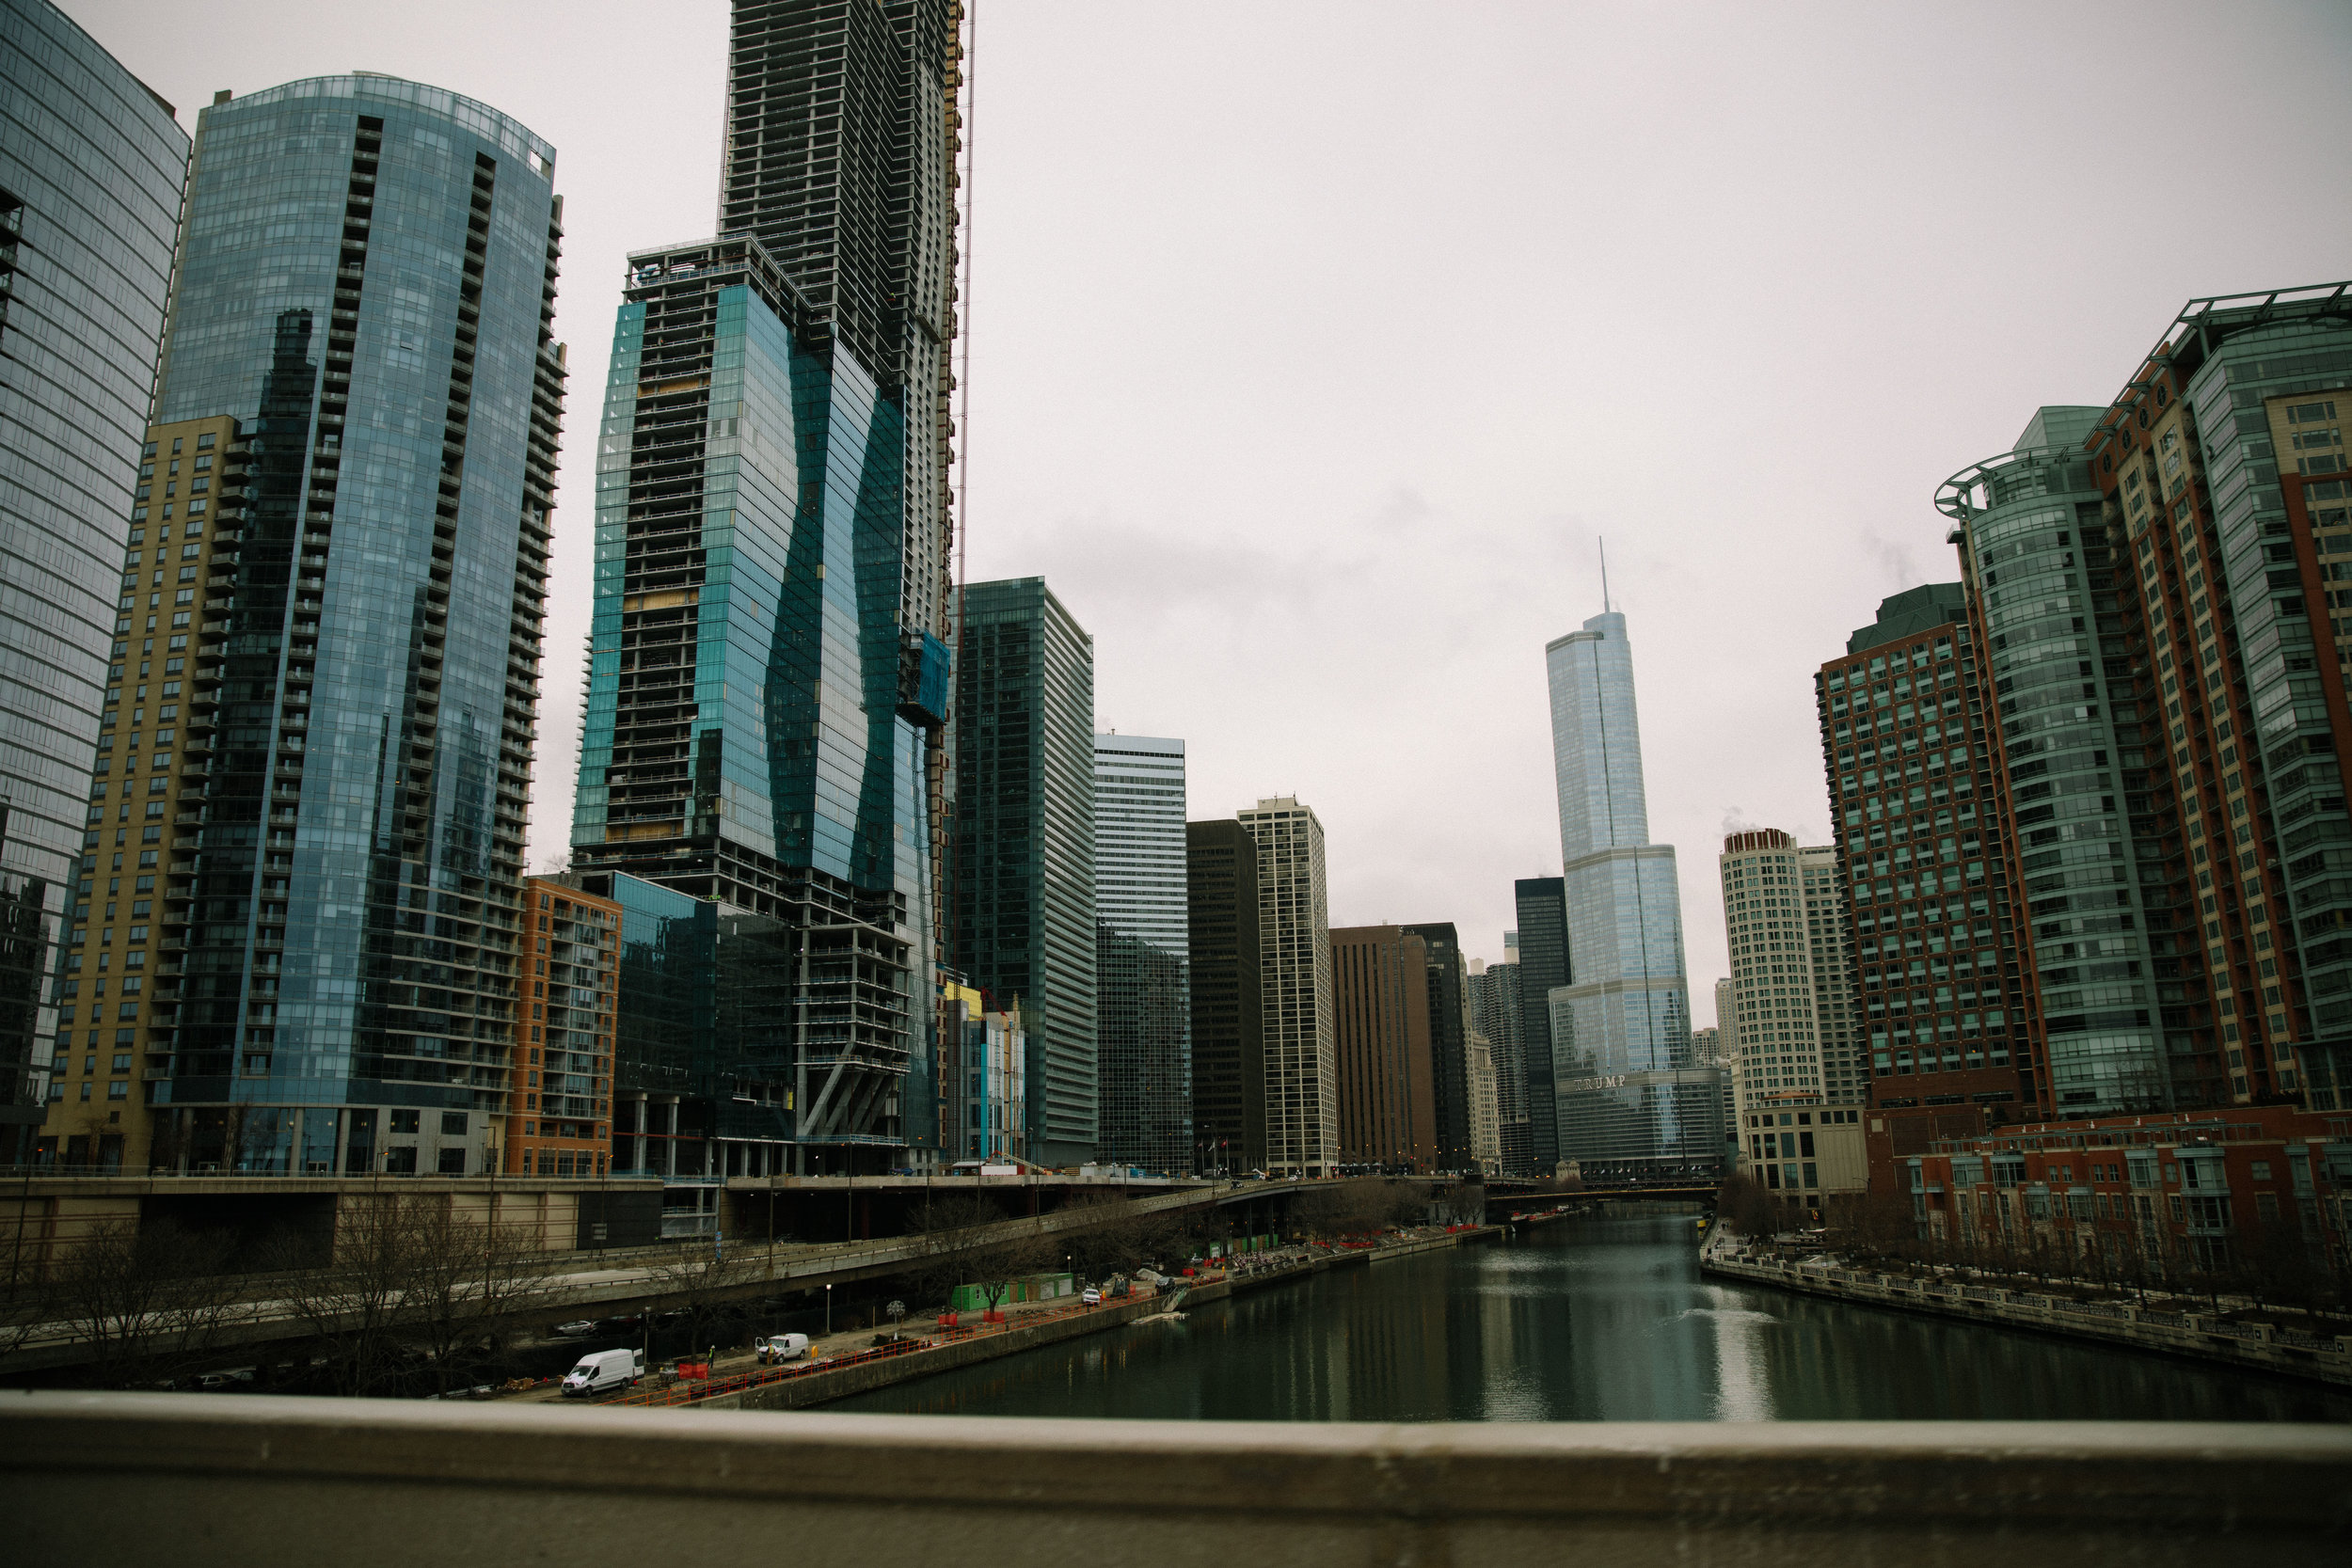 The Chicago River flows into Lake Michigan in downtown Chicago, Illinois. Chicago is home to MCC partner organization, Parents for Peace and Justice, a support and advocacy organization for families who have lost kids to gun violence in Chicago.